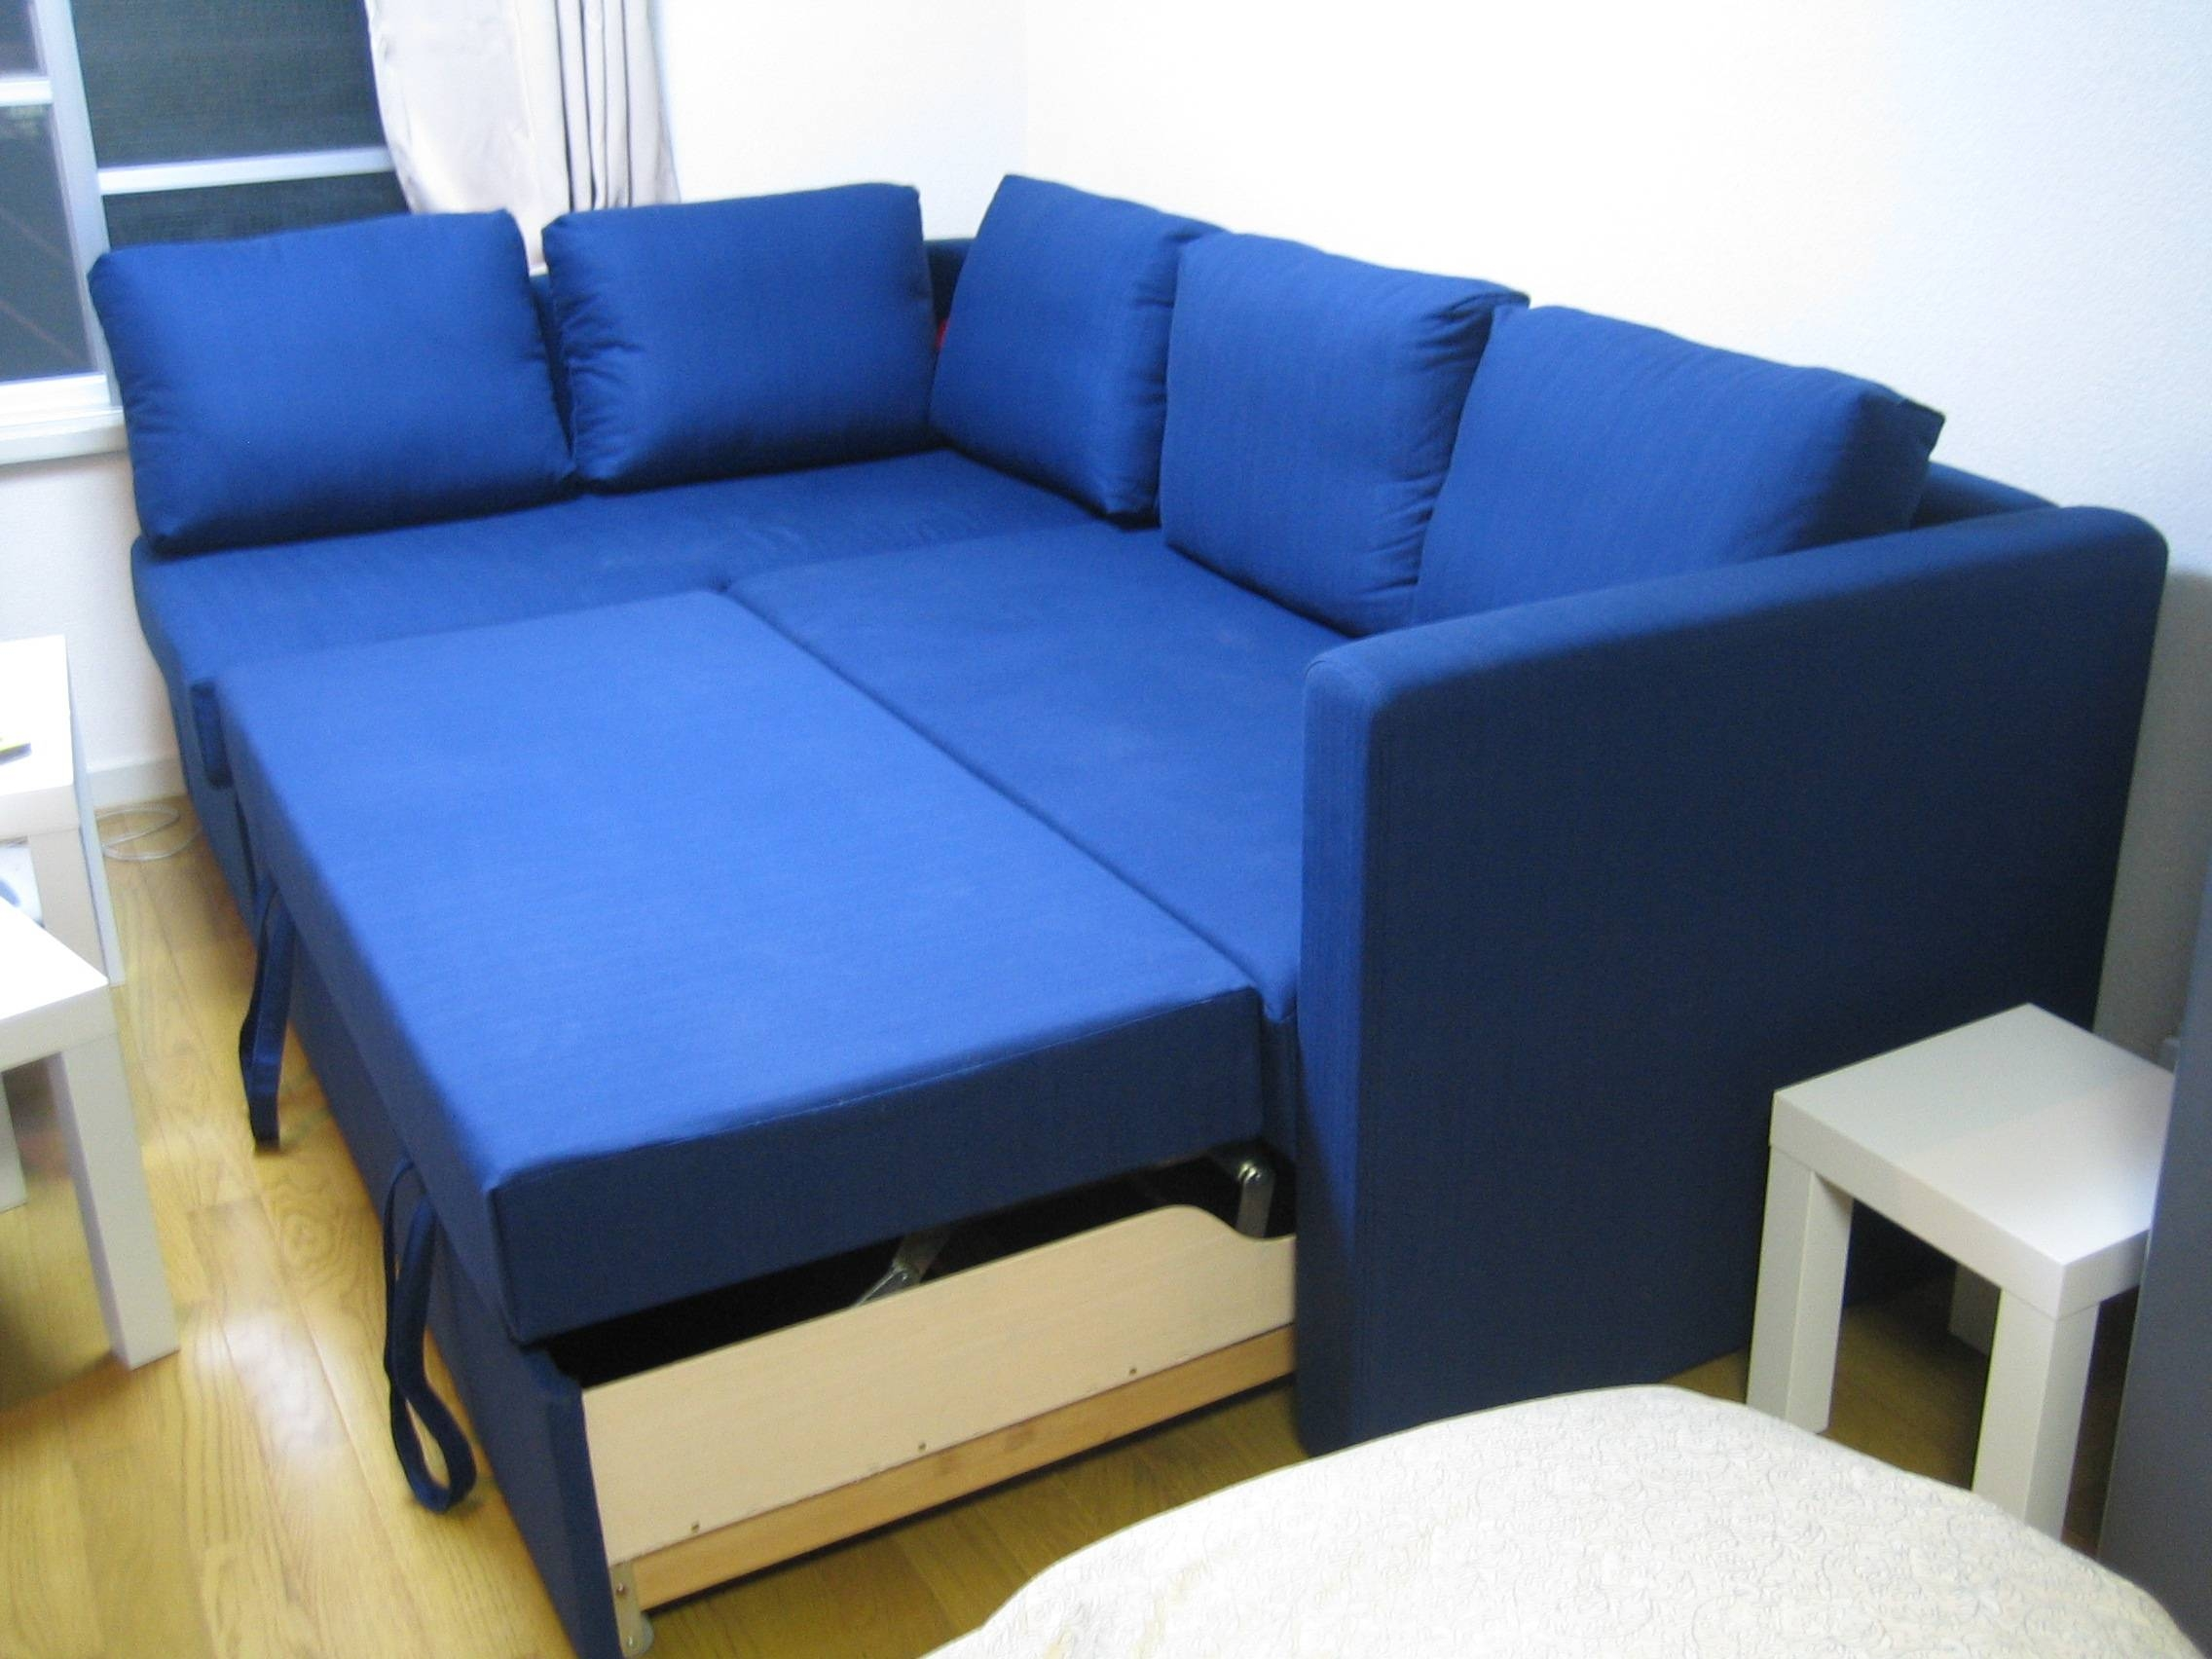 Corner Sleeper Sofa Ikea | Tehranmix Decoration With Sleeper Sofa Sectional Ikea (View 4 of 25)